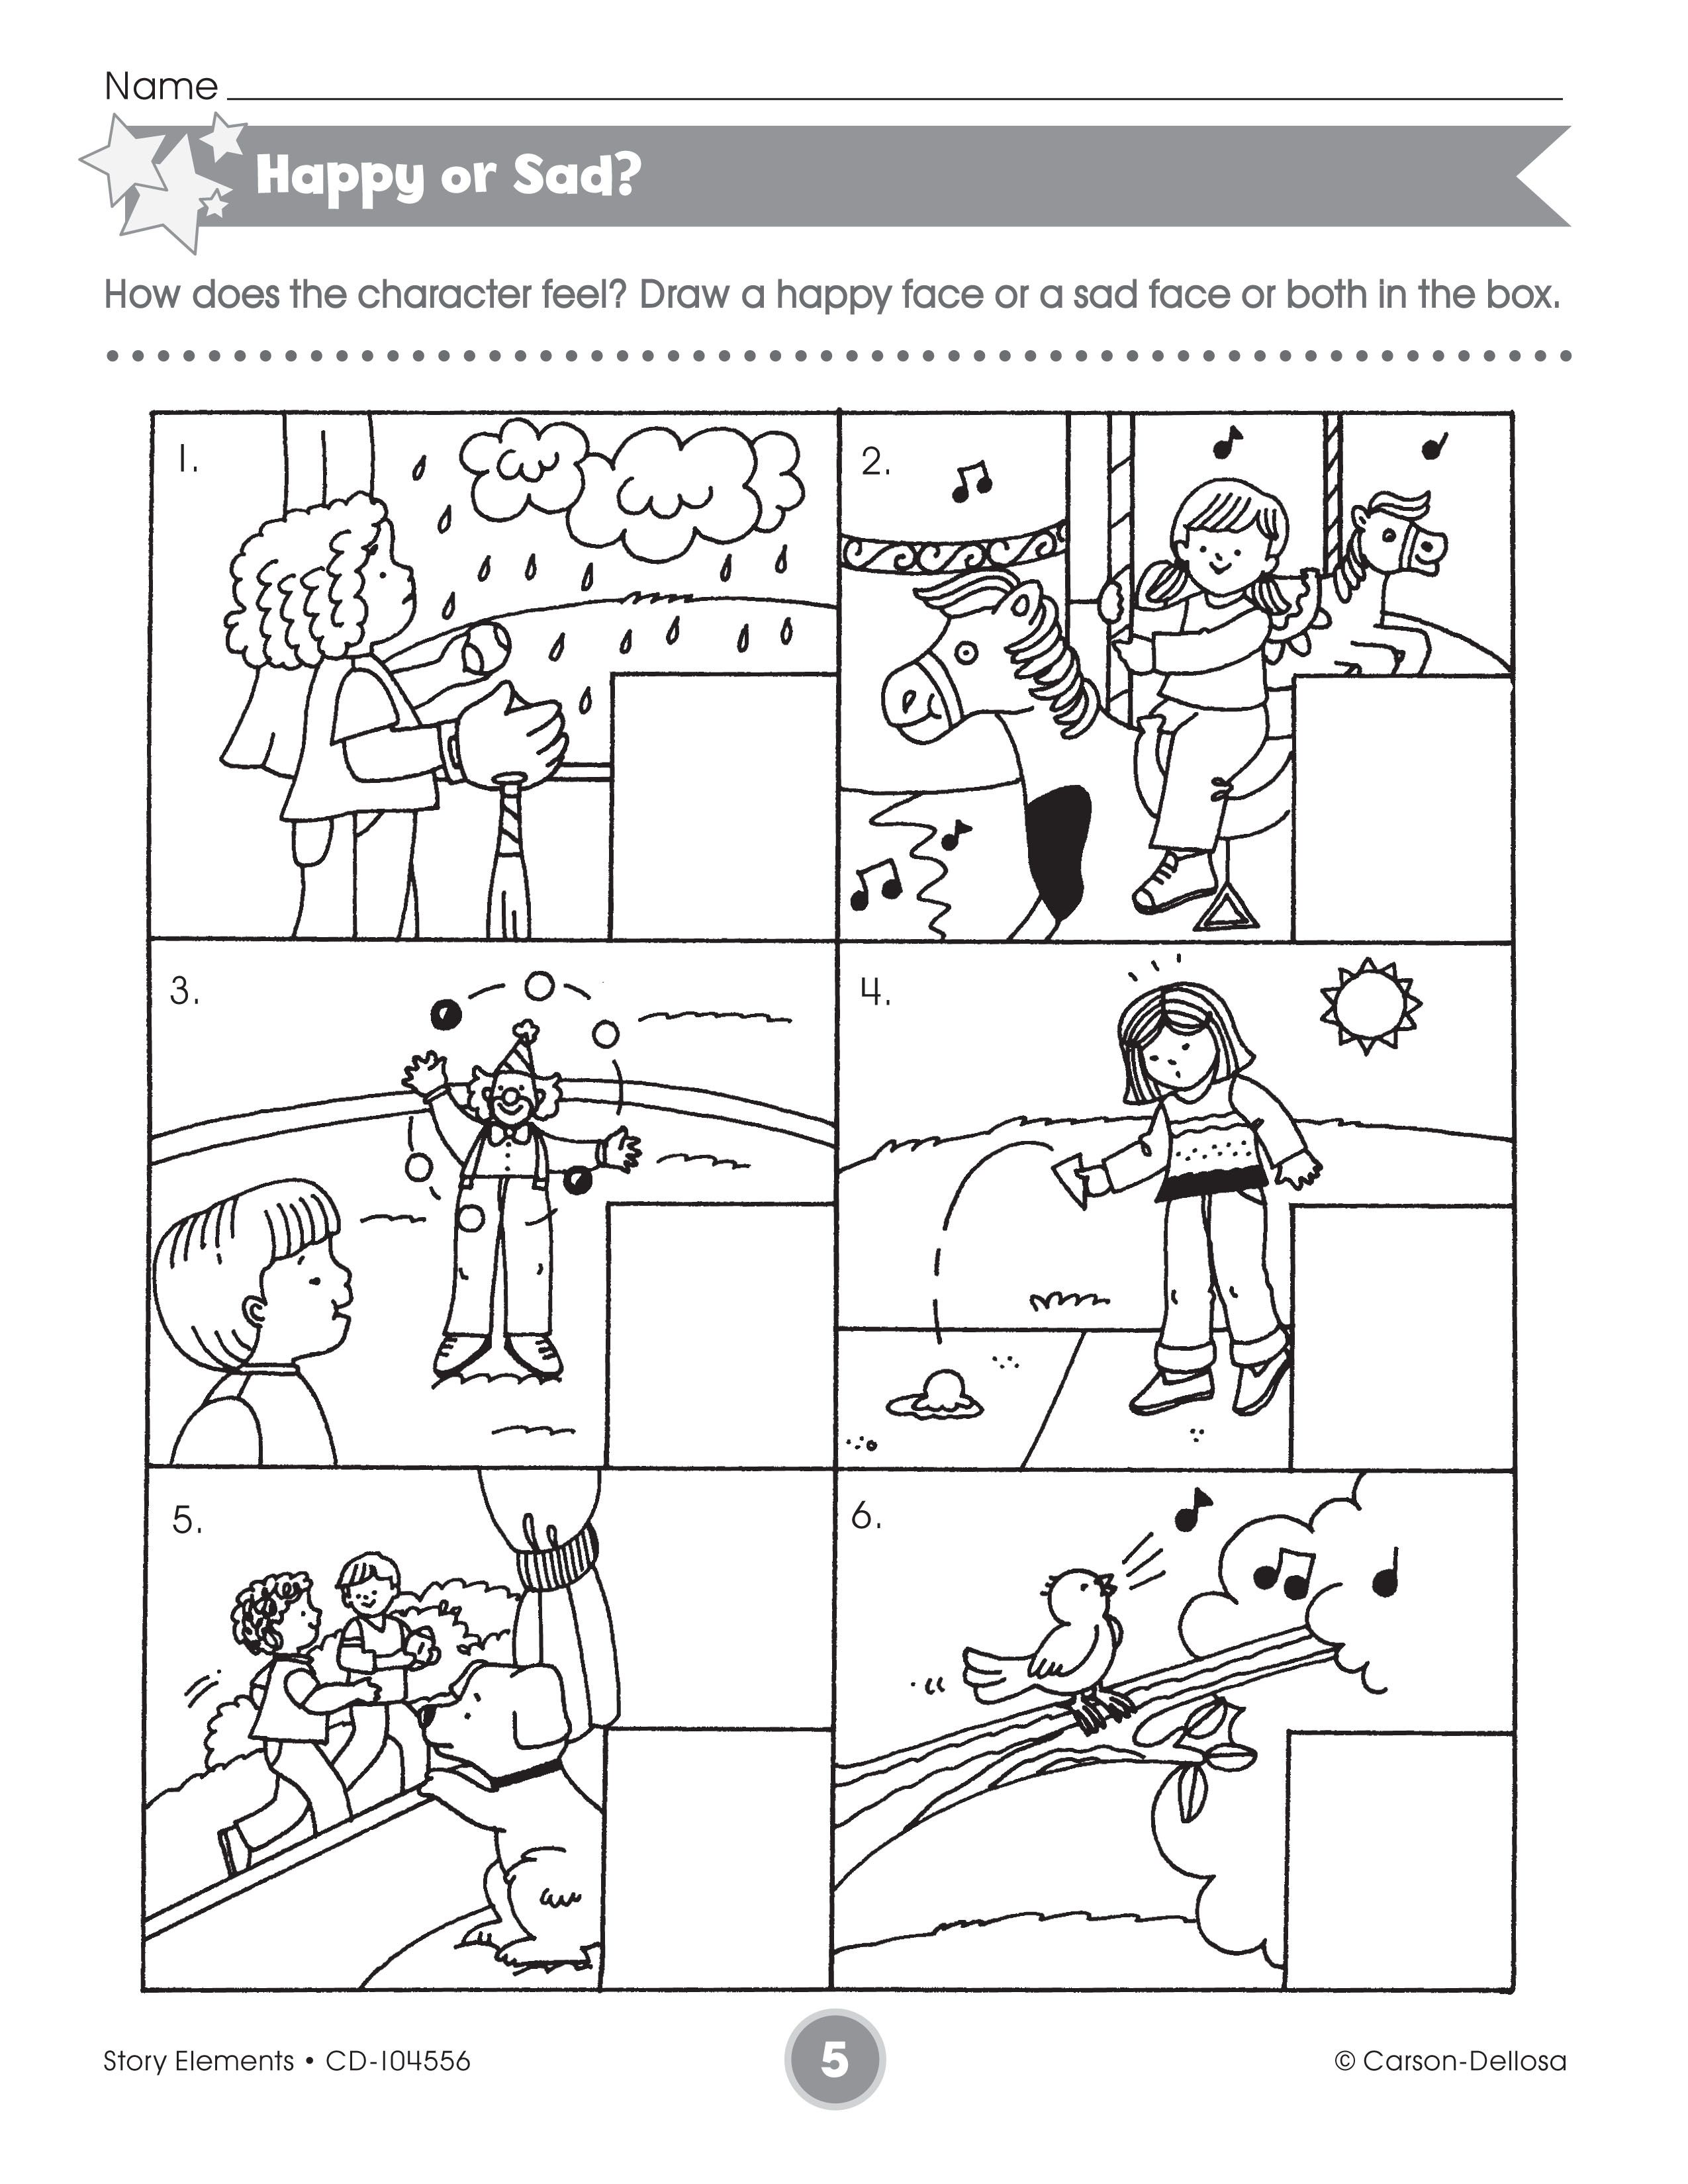 The Happy Or Sad Activity Sheet Helps Student Discern